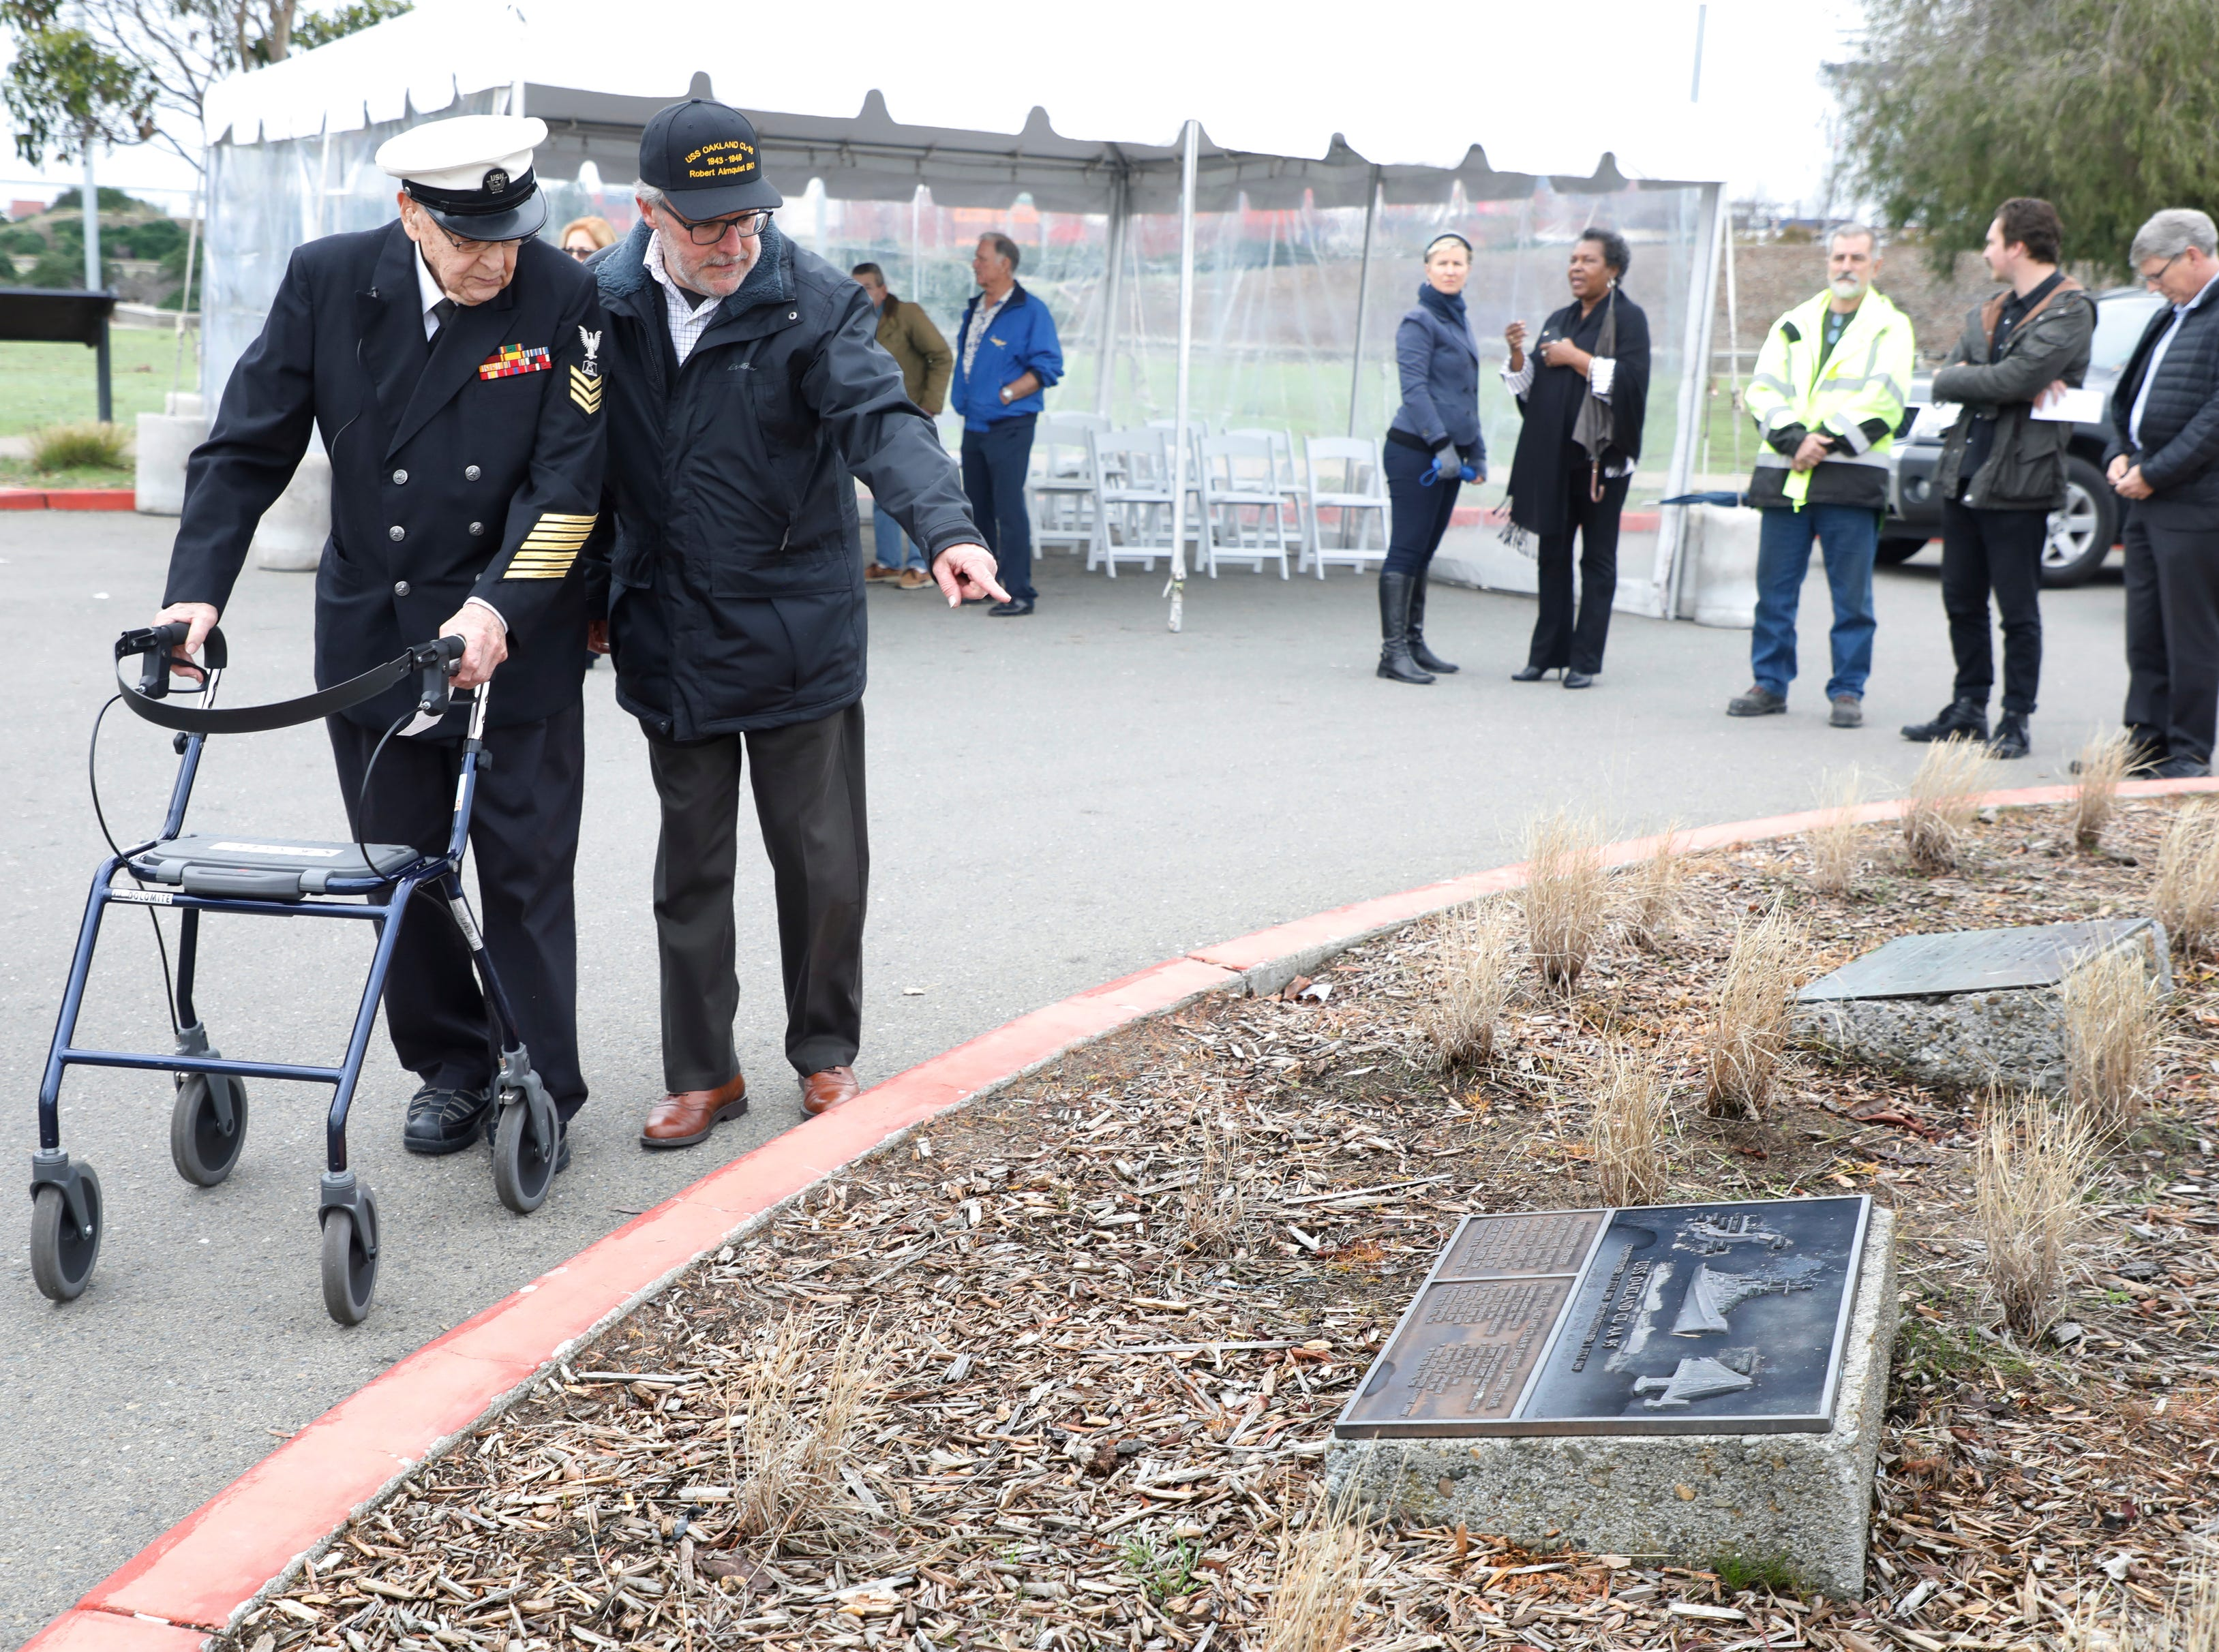 Paul Ferreira, right, points out a plaque at the base of the USS Oakland mast to WWII veteran Robert Almquist, 95, who traveled from Wisconsin to see the last remaining piece of the ship he served on at Middle Harbor Shoreline Park in Oakland, Calif., on Friday, Jan. 11, 2019. The Almquist family had raised money on a GoFundMe page to bring the World War II Navy veteran to the West Coast,  to visit the mast and to see a plaque bearing his name at the Mt. Soledad National Veterans Memorial in La Jolla.  Visit Oakland heard about the fund raising and decided to pay for Almquist's flight to Oakland. (Laura A. Oda/Bay Area News Group)